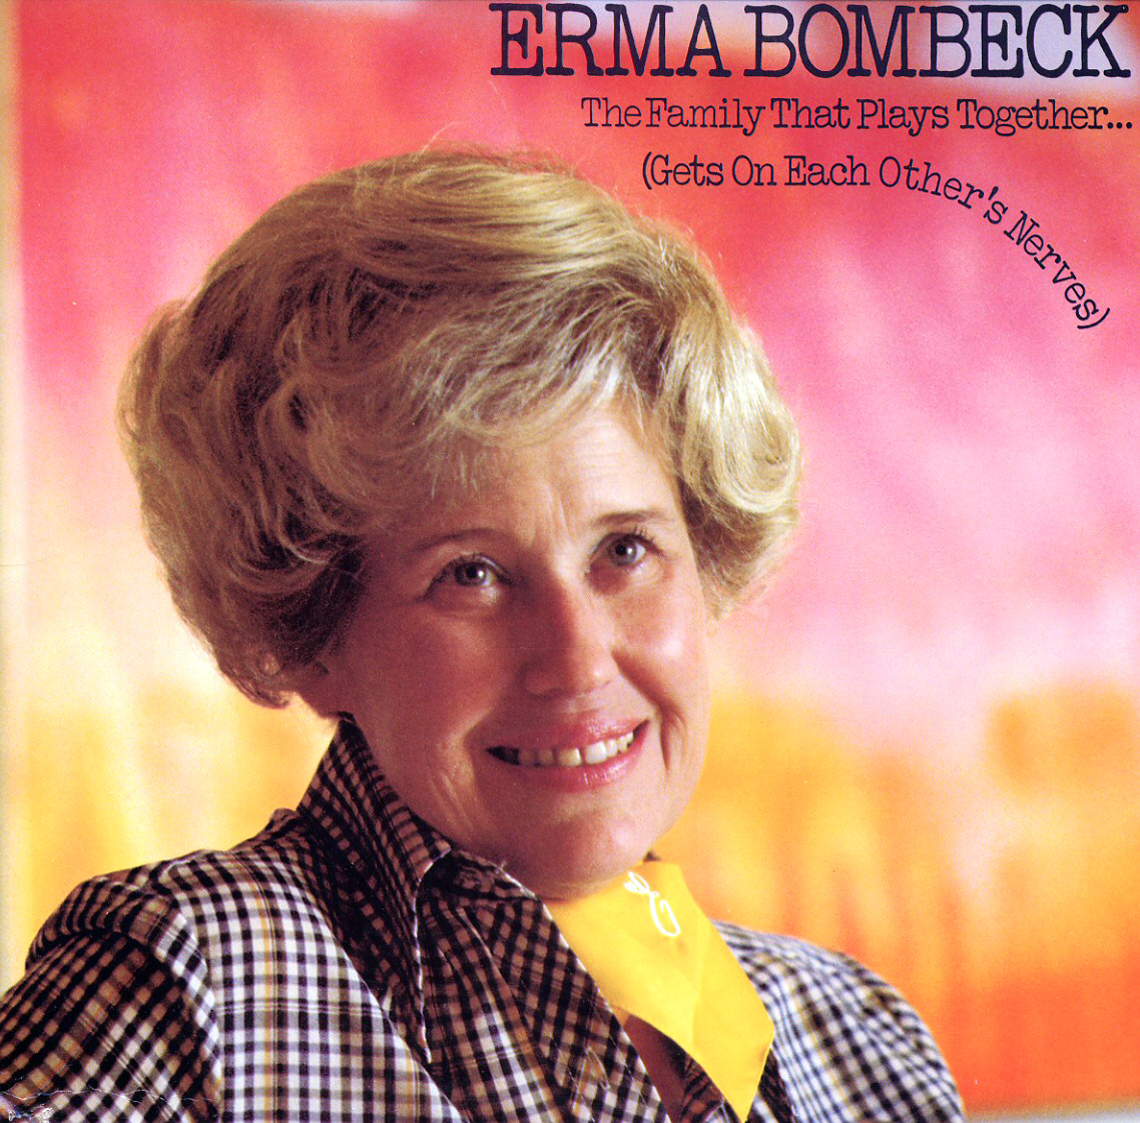 erma bombeck life essay Erma bombeck essays - use this service to receive your sophisticated essay delivered on time get started with research paper writing and make the best college.